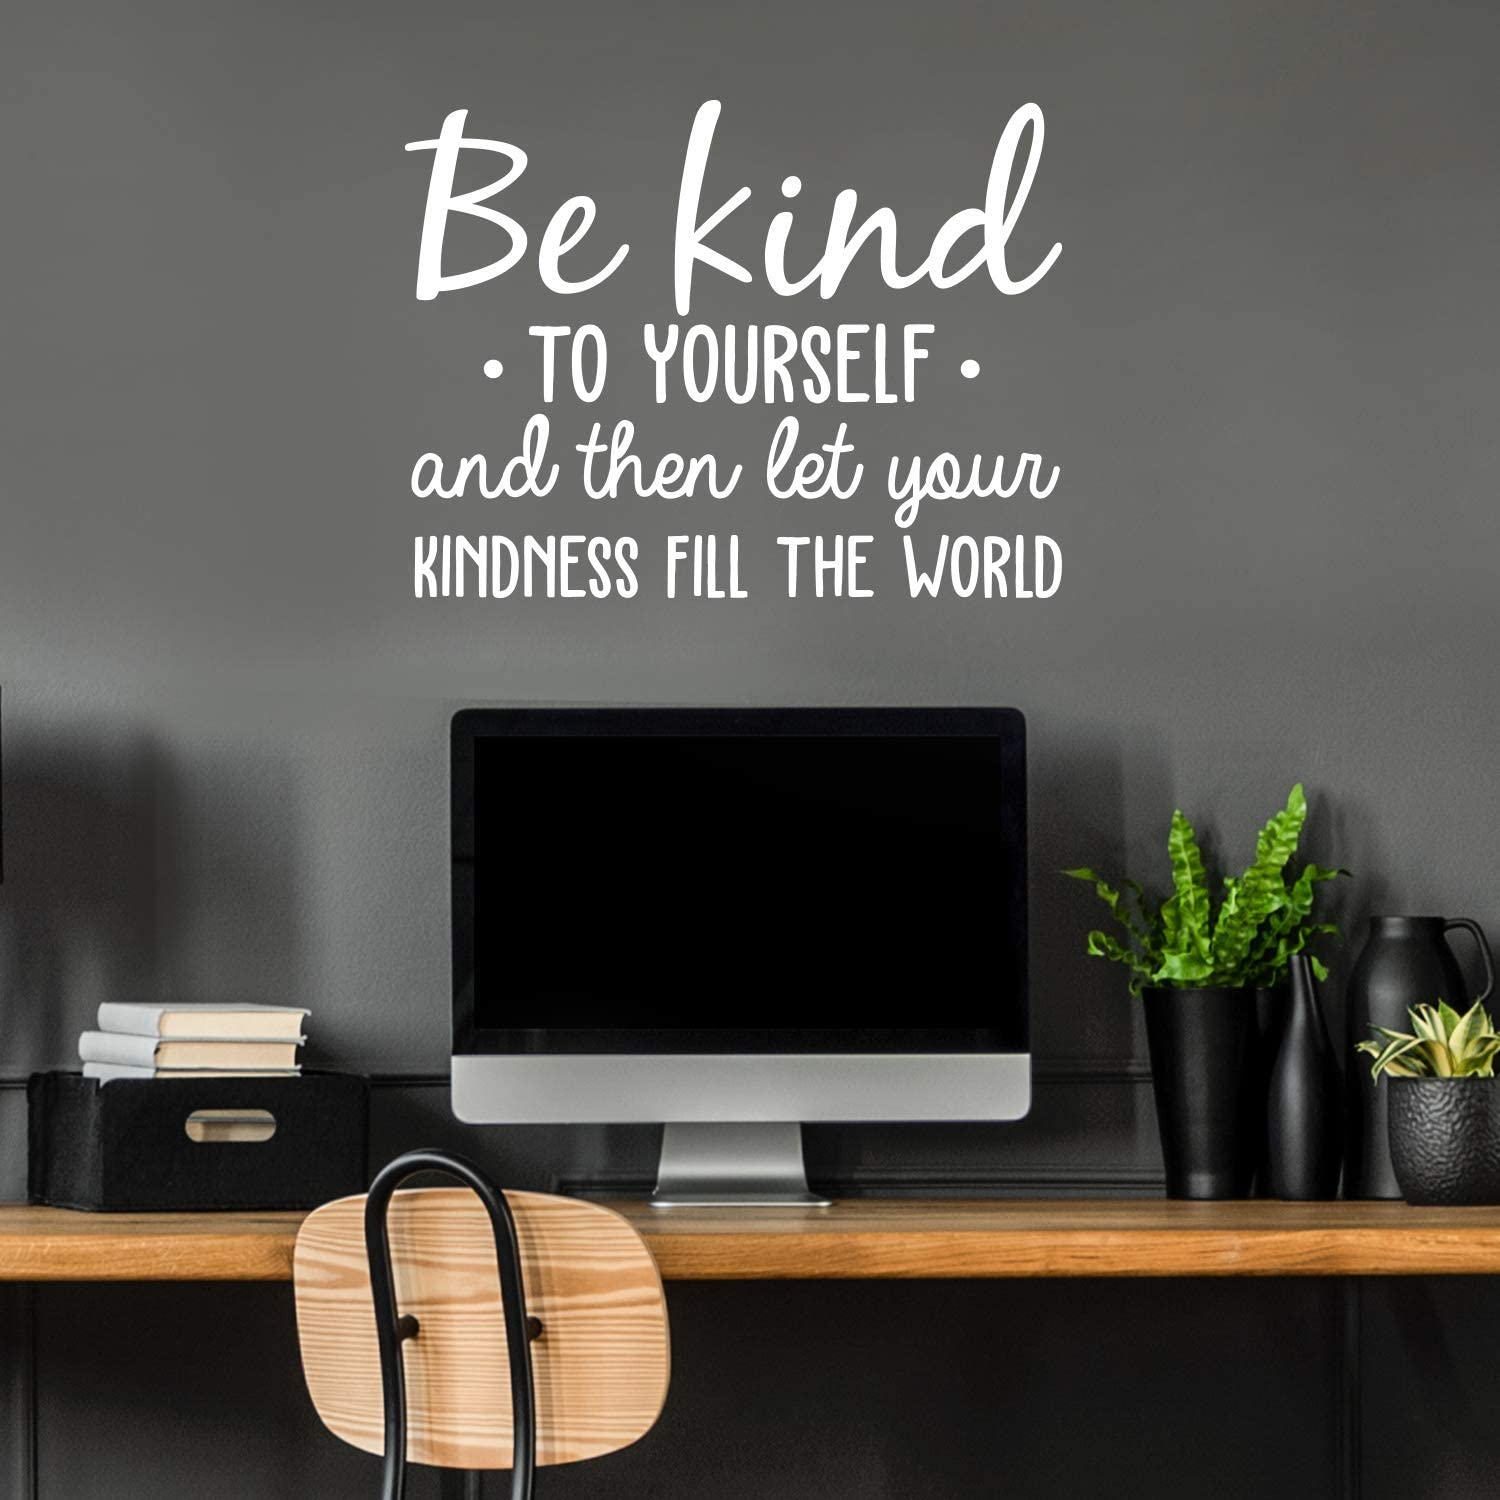 Vinyl Wall Art Decal - Be Kind to Yourself - 22